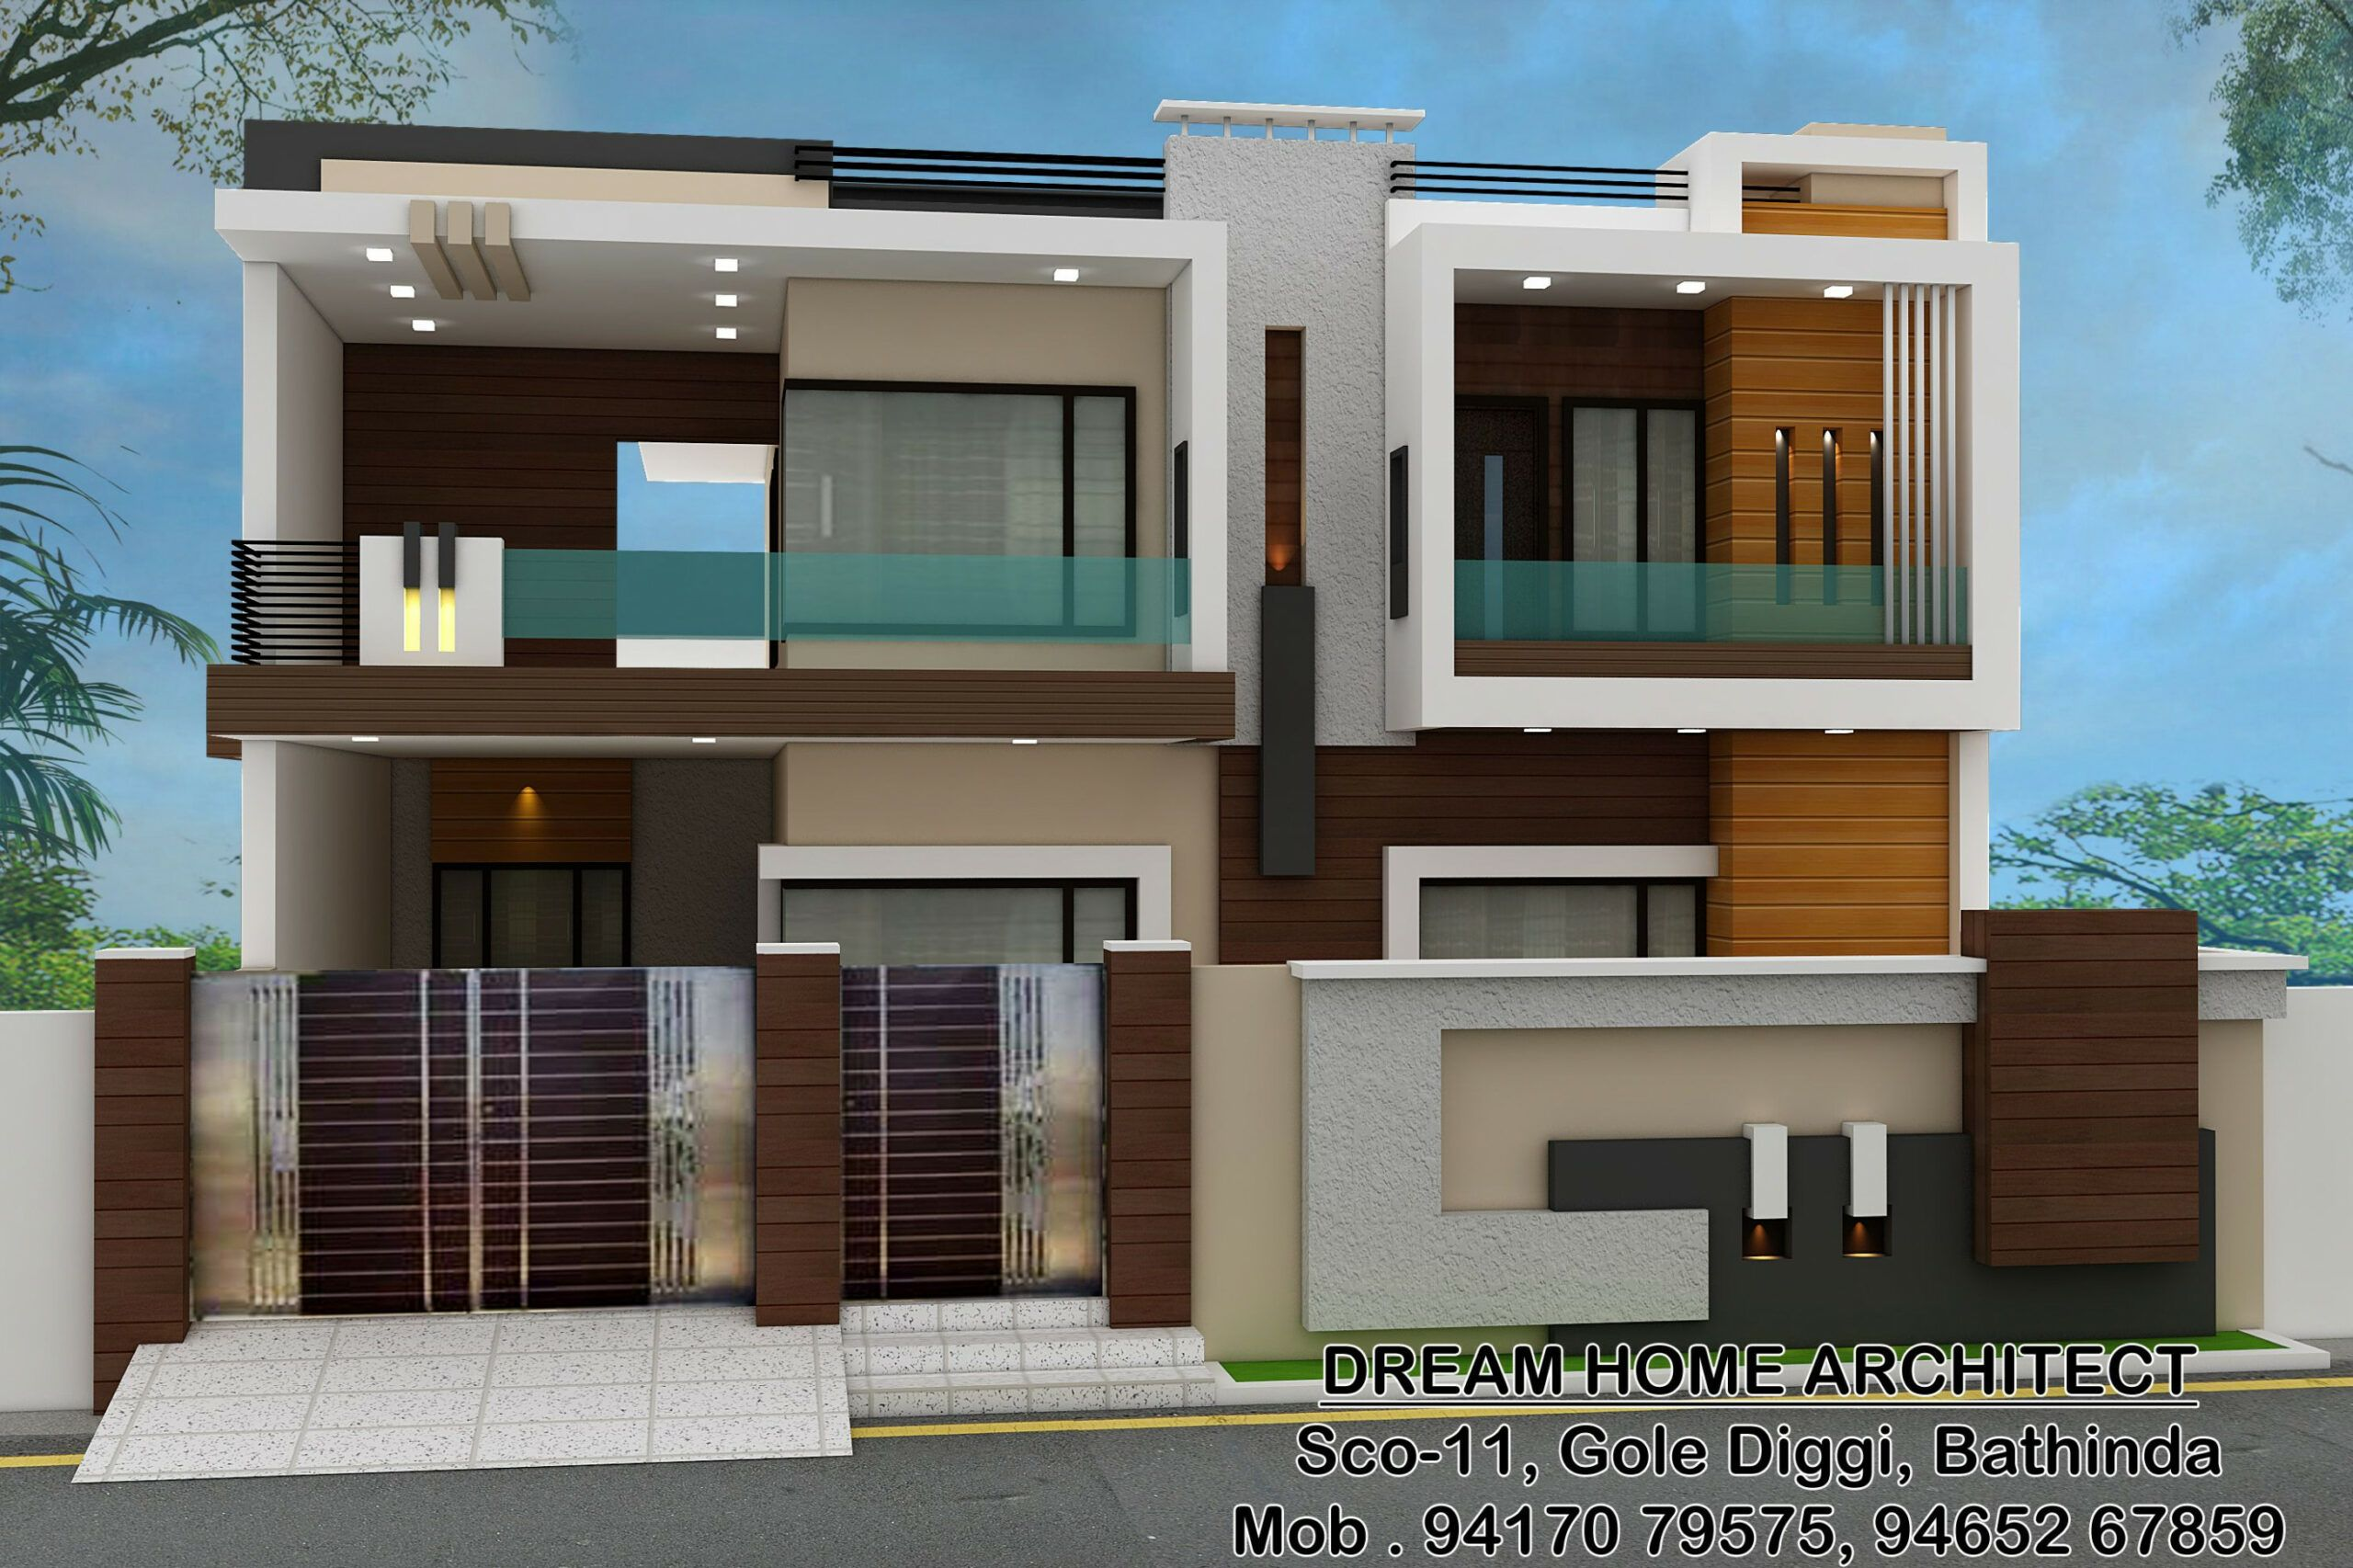 Pin By Anand Shukla On Boundary Des In 2020 Bungalow House